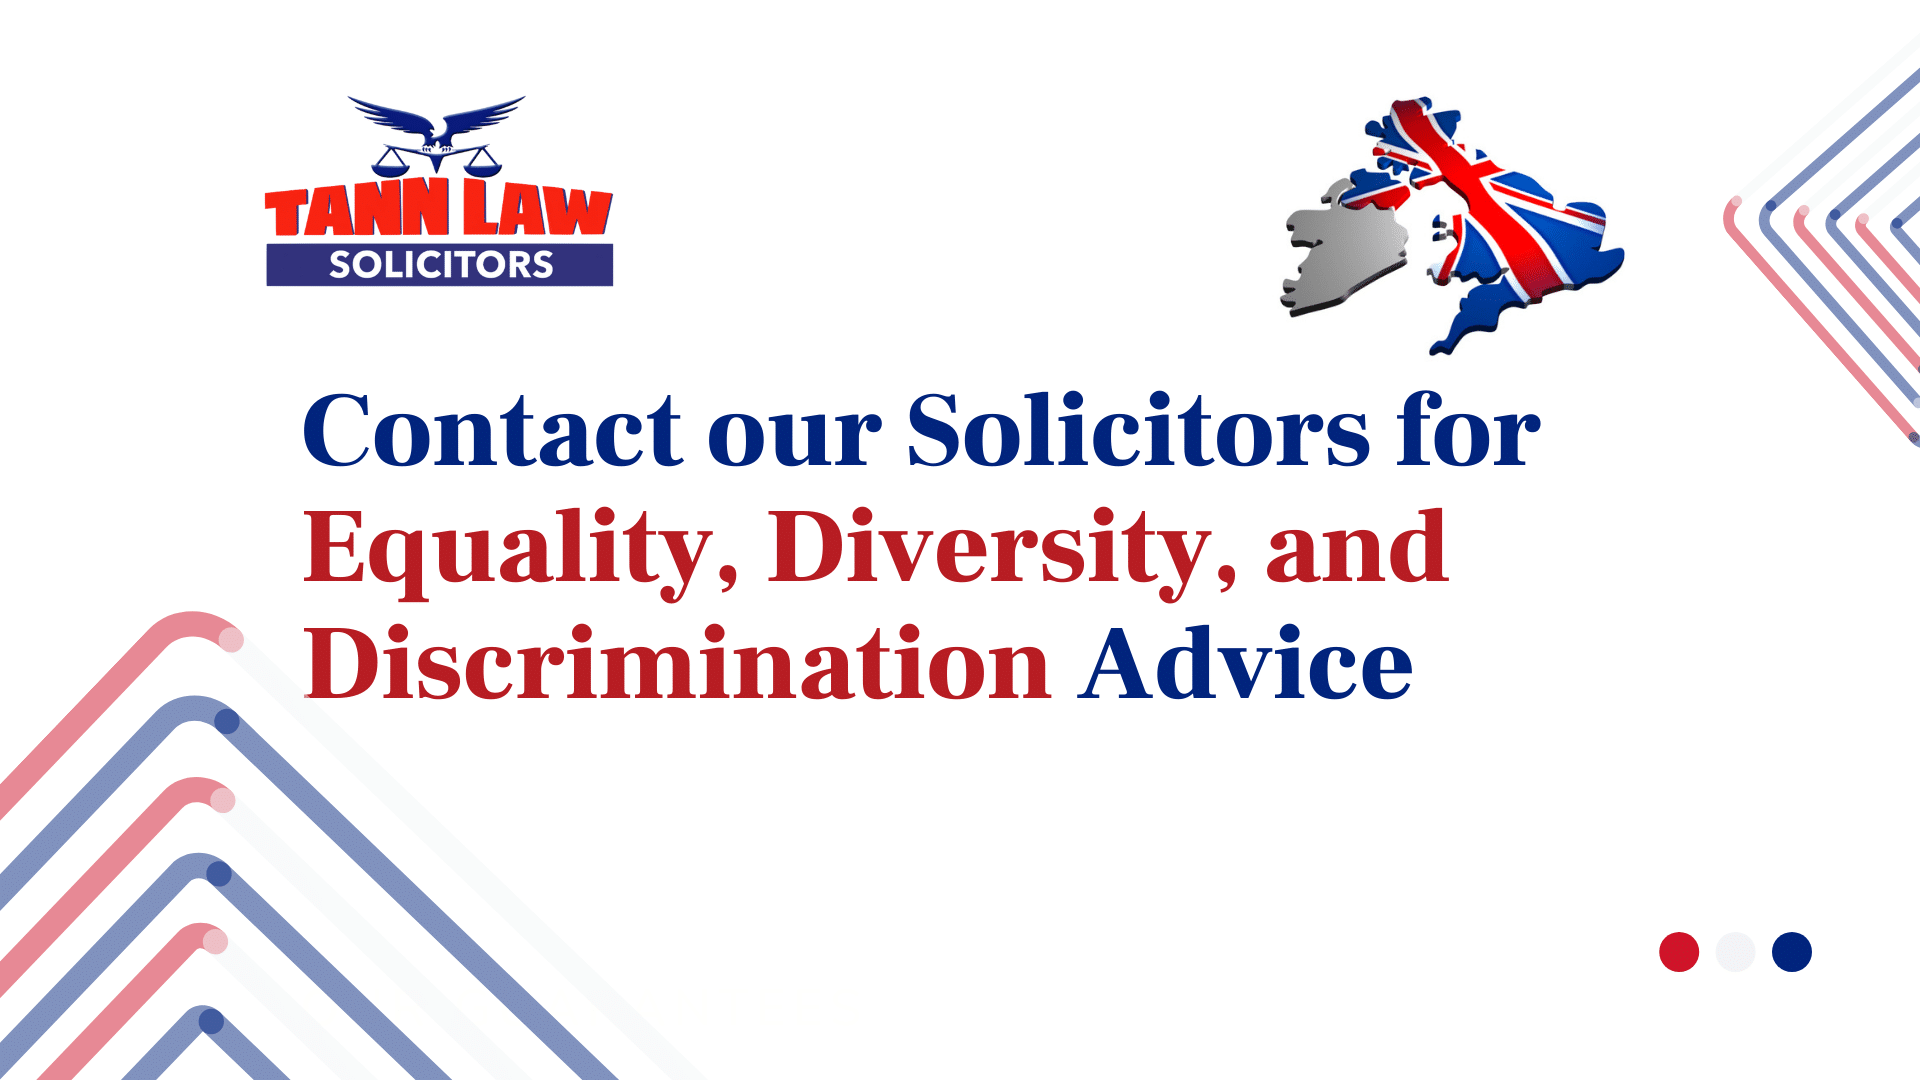 solicitors for Equality, Diversity, and Discrimination Advice